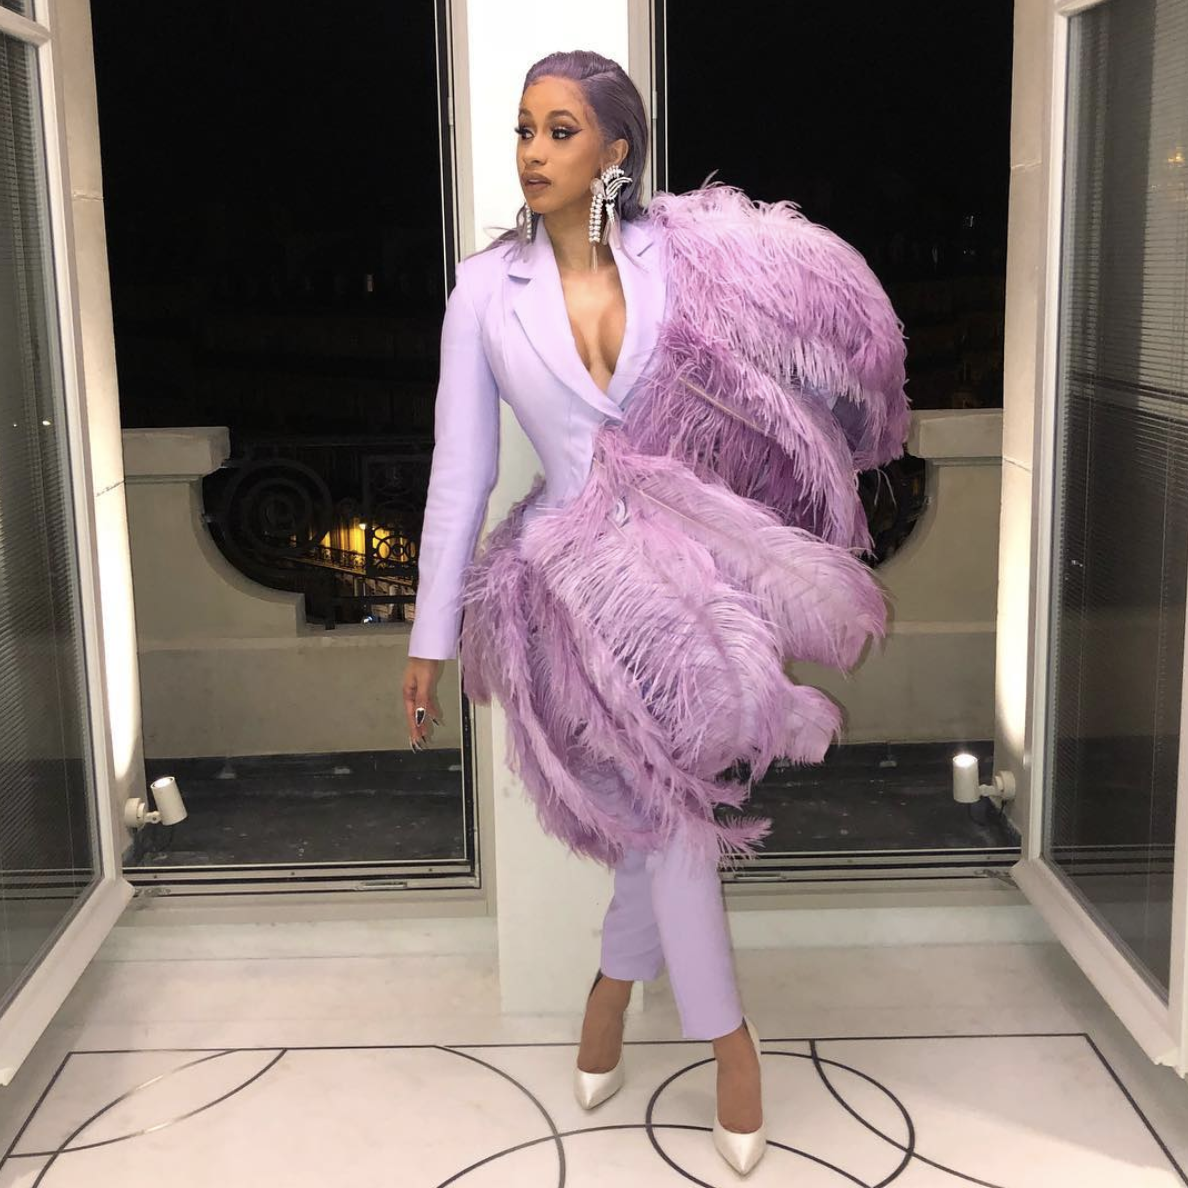 And leave it to Cardi to upstage Big Bird with this incredible feathered pantsuit and matching hair combo.